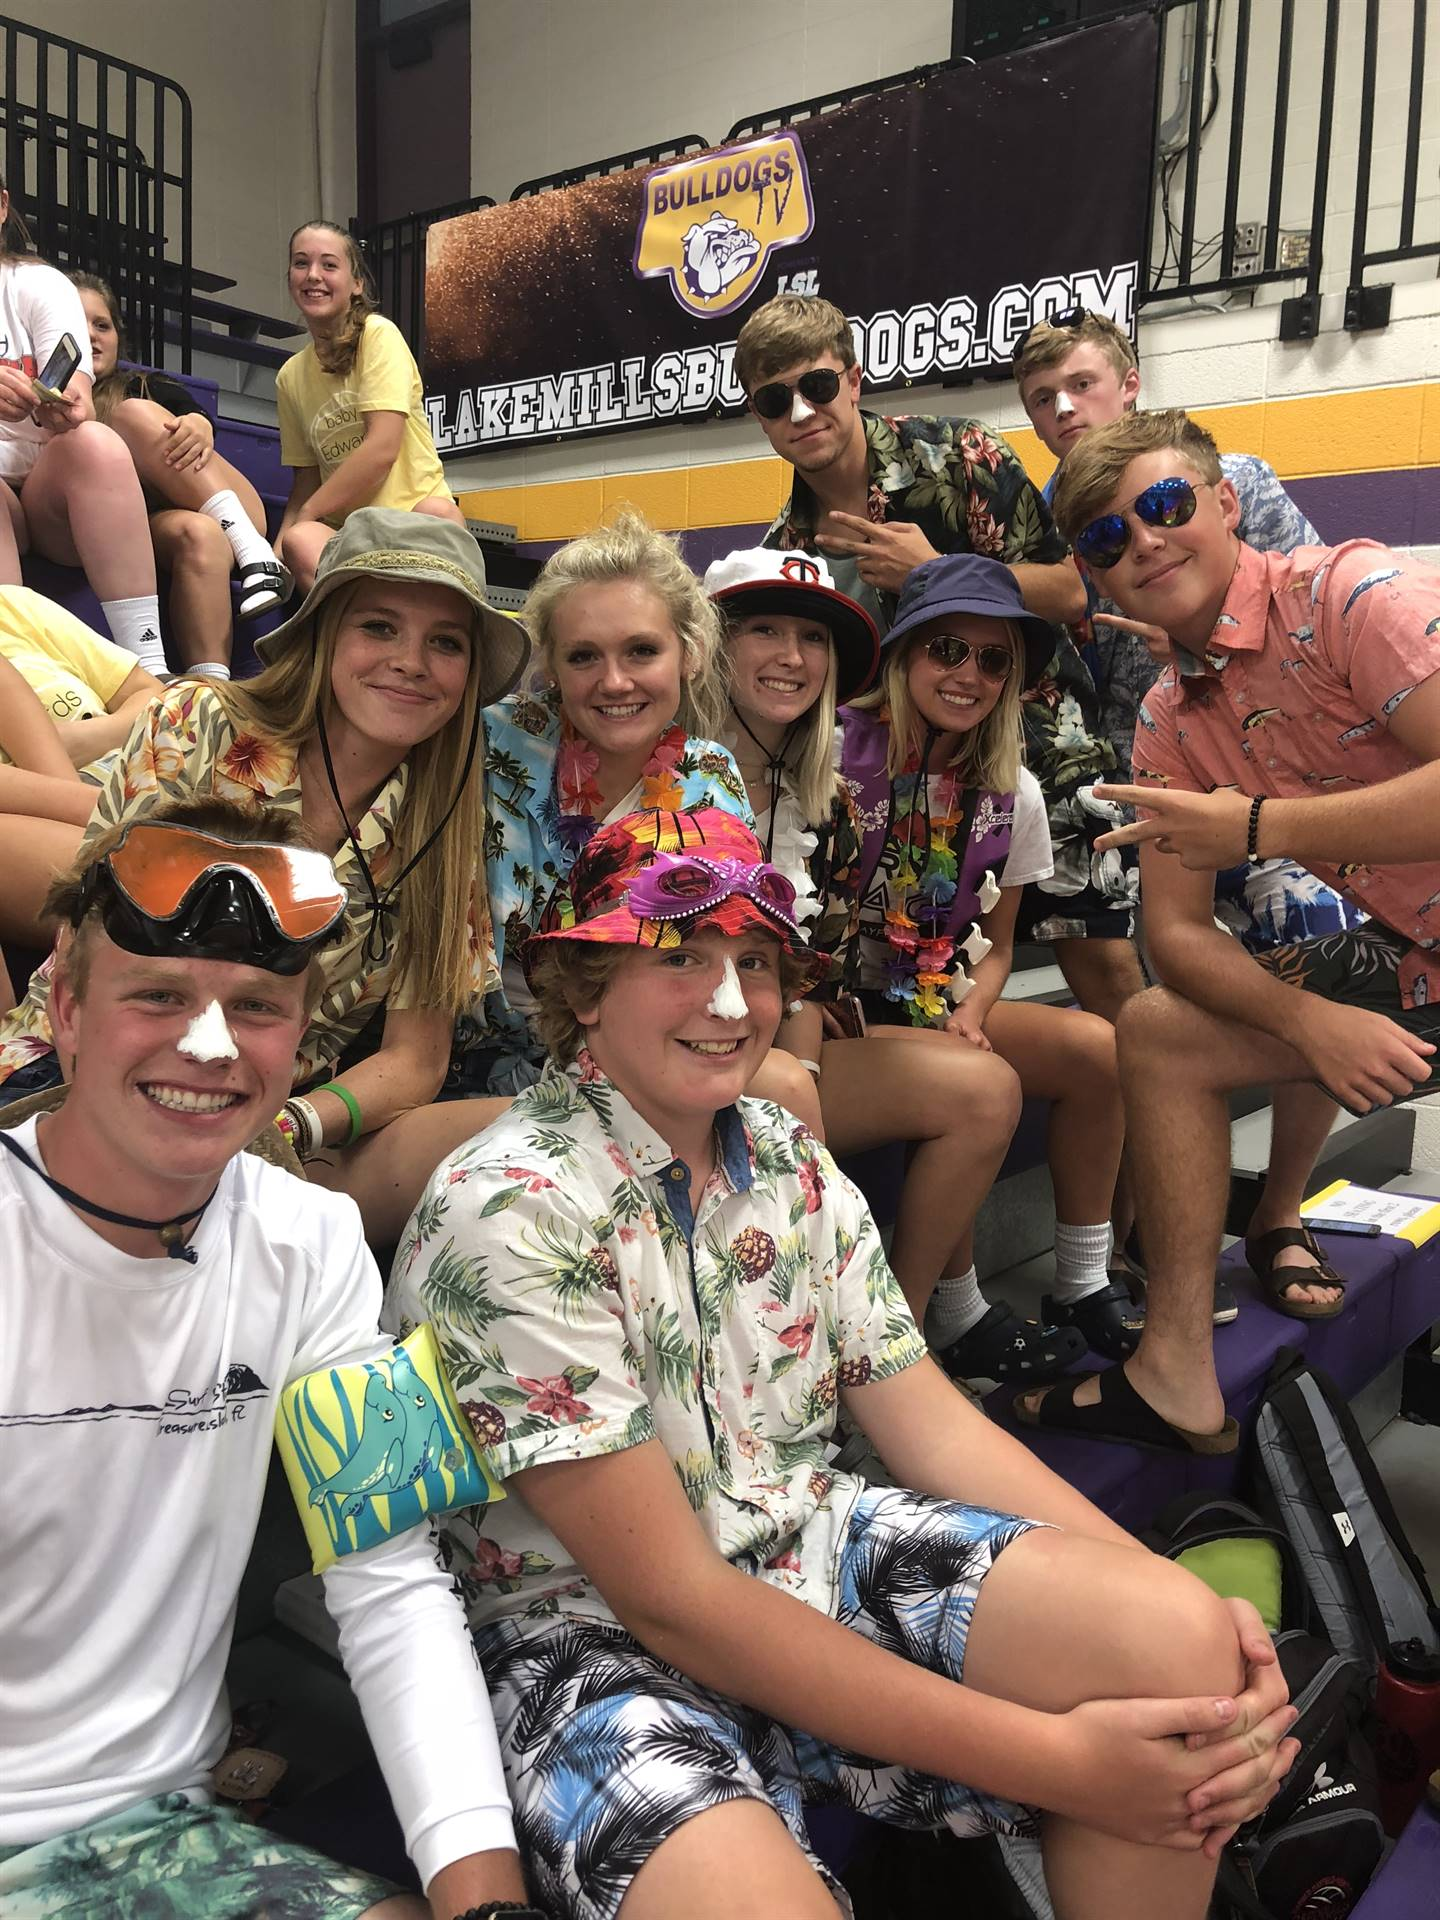 high school students dressed in tropical clothing while in the bleachers